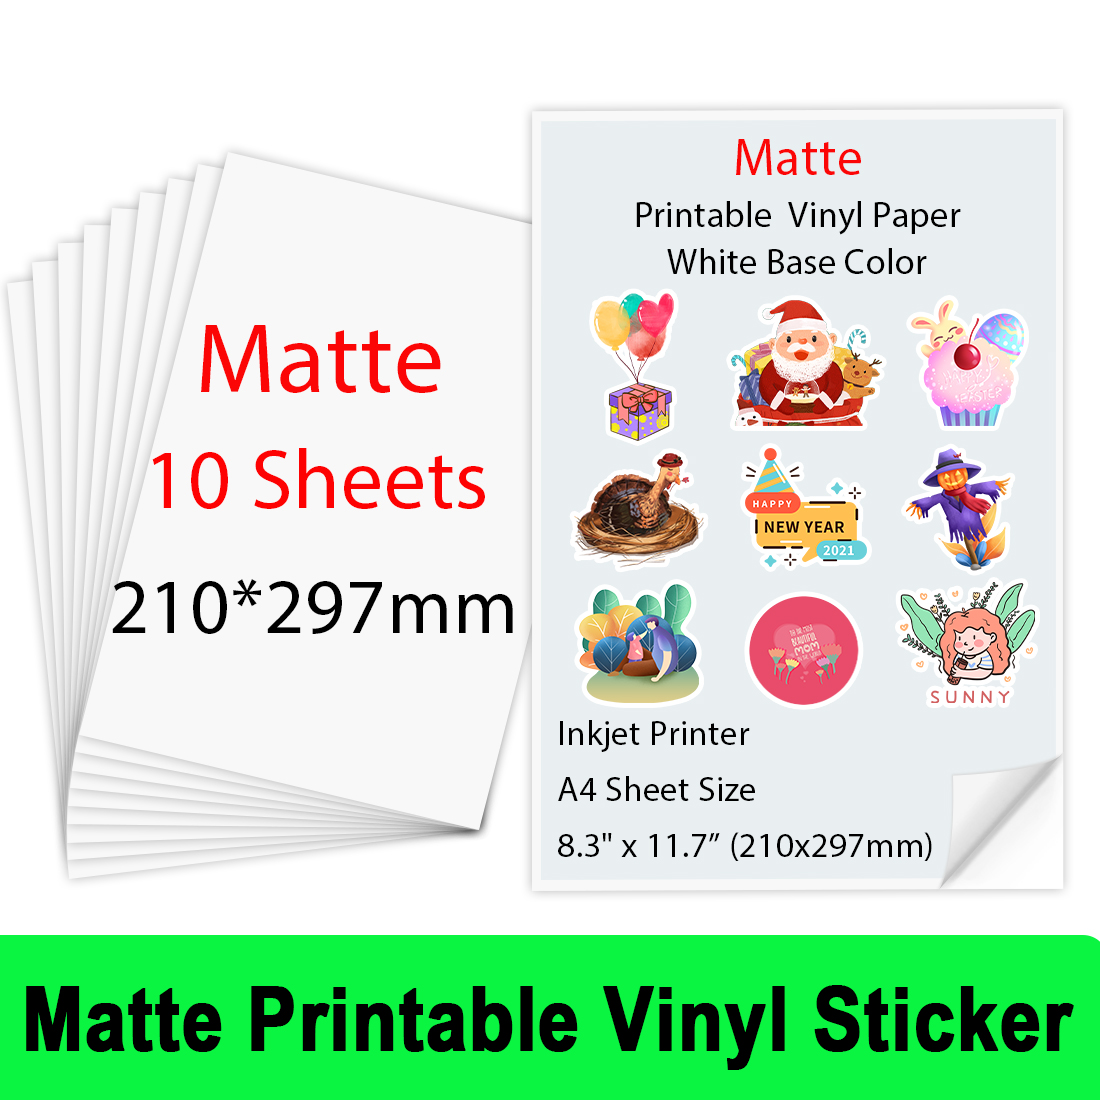 10 Sheets Printable Vinyl Sticker Paper A4 Glossy Matte Self-adhesive Waterproof Copy Paper for Inkjet printer DIY Crafts Gifts